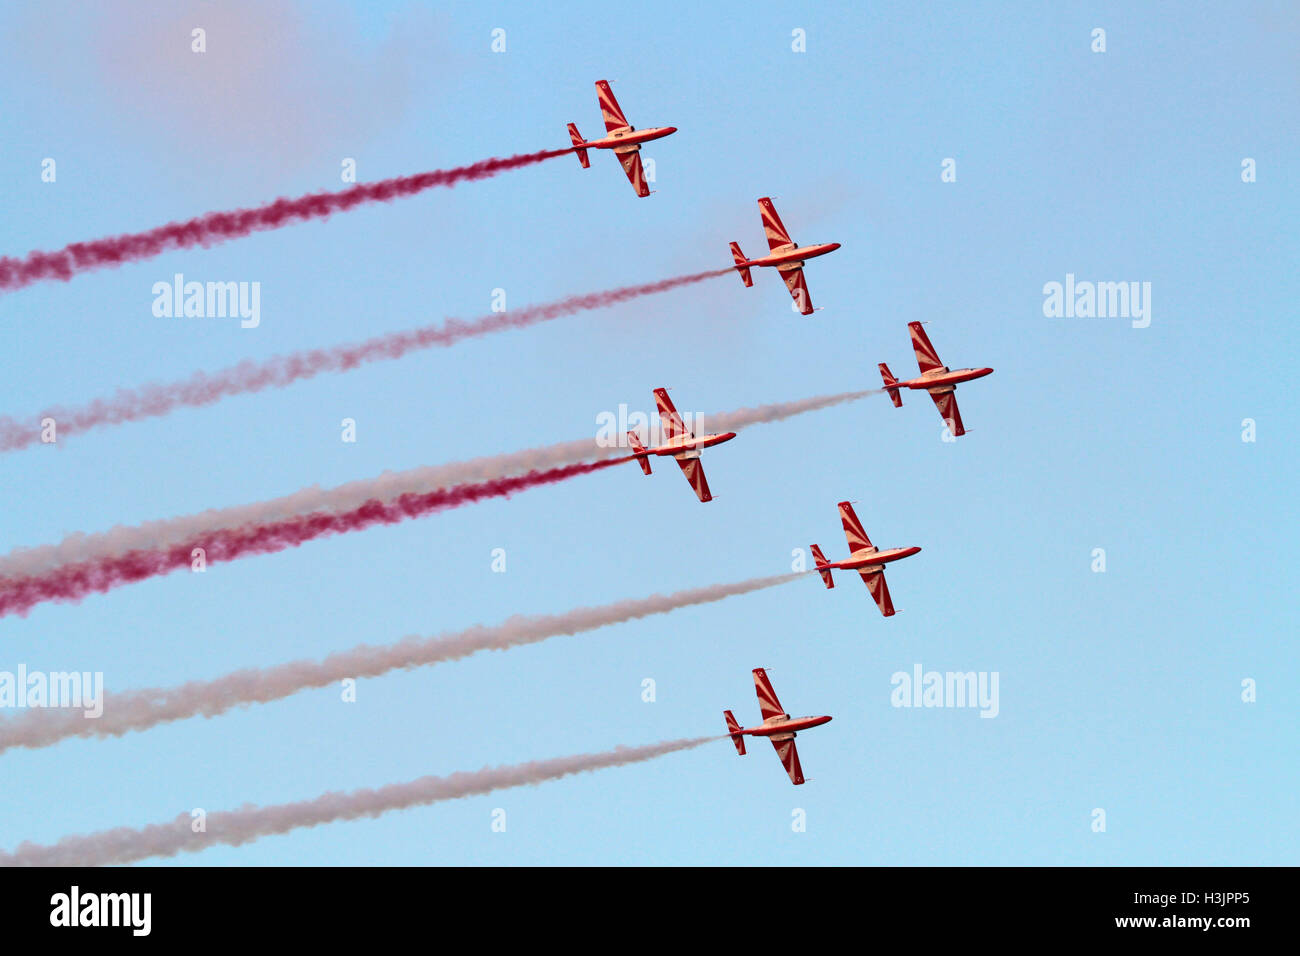 The Polish Air Force aerobatic team, the Bialo-Czerwone Iskry (White and Red Sparks), flying in formation Stock Photo